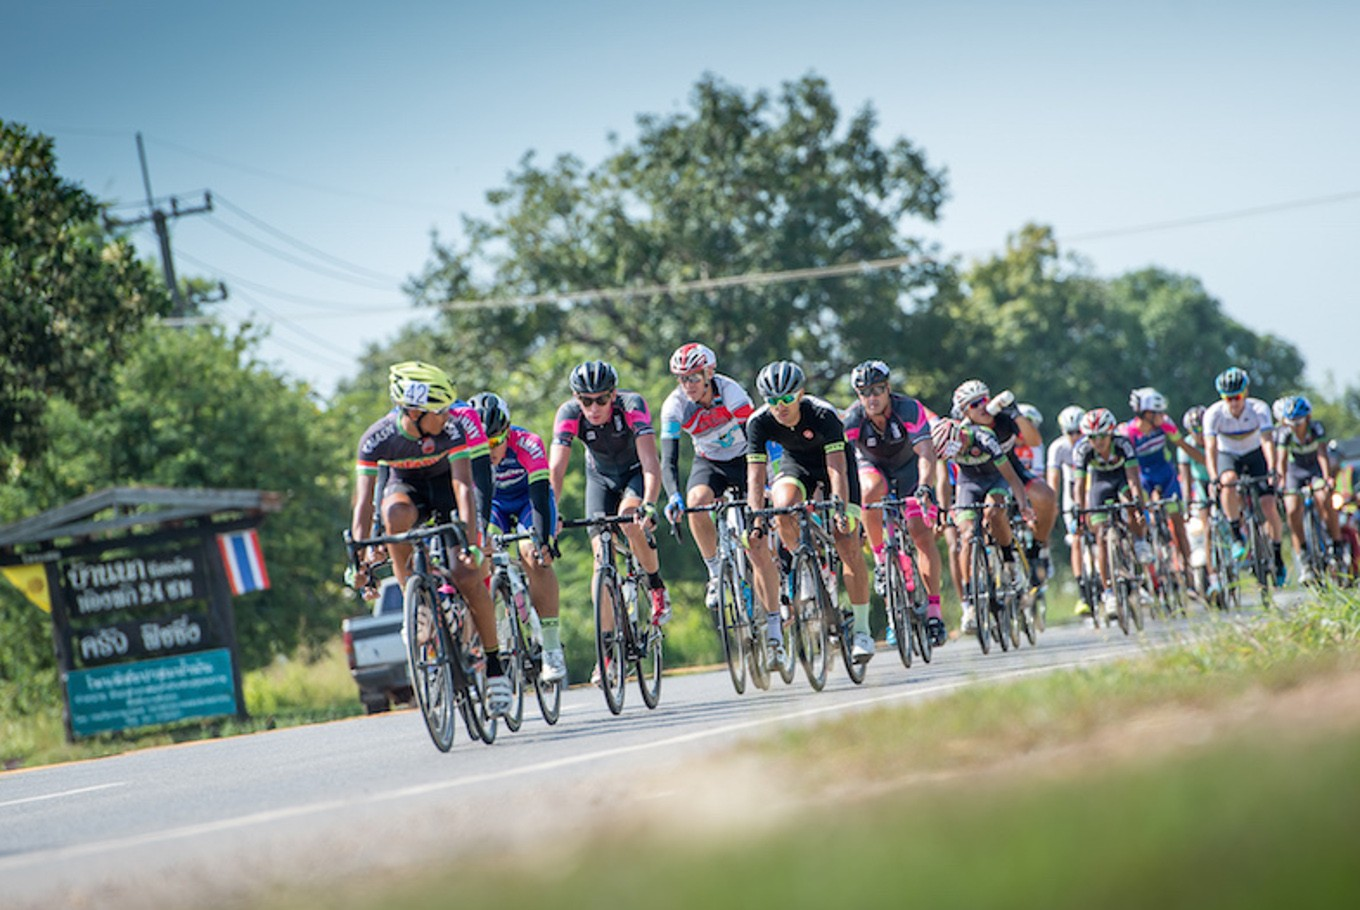 'Ride to Khong's Legendary' cycling race returns to Thailand